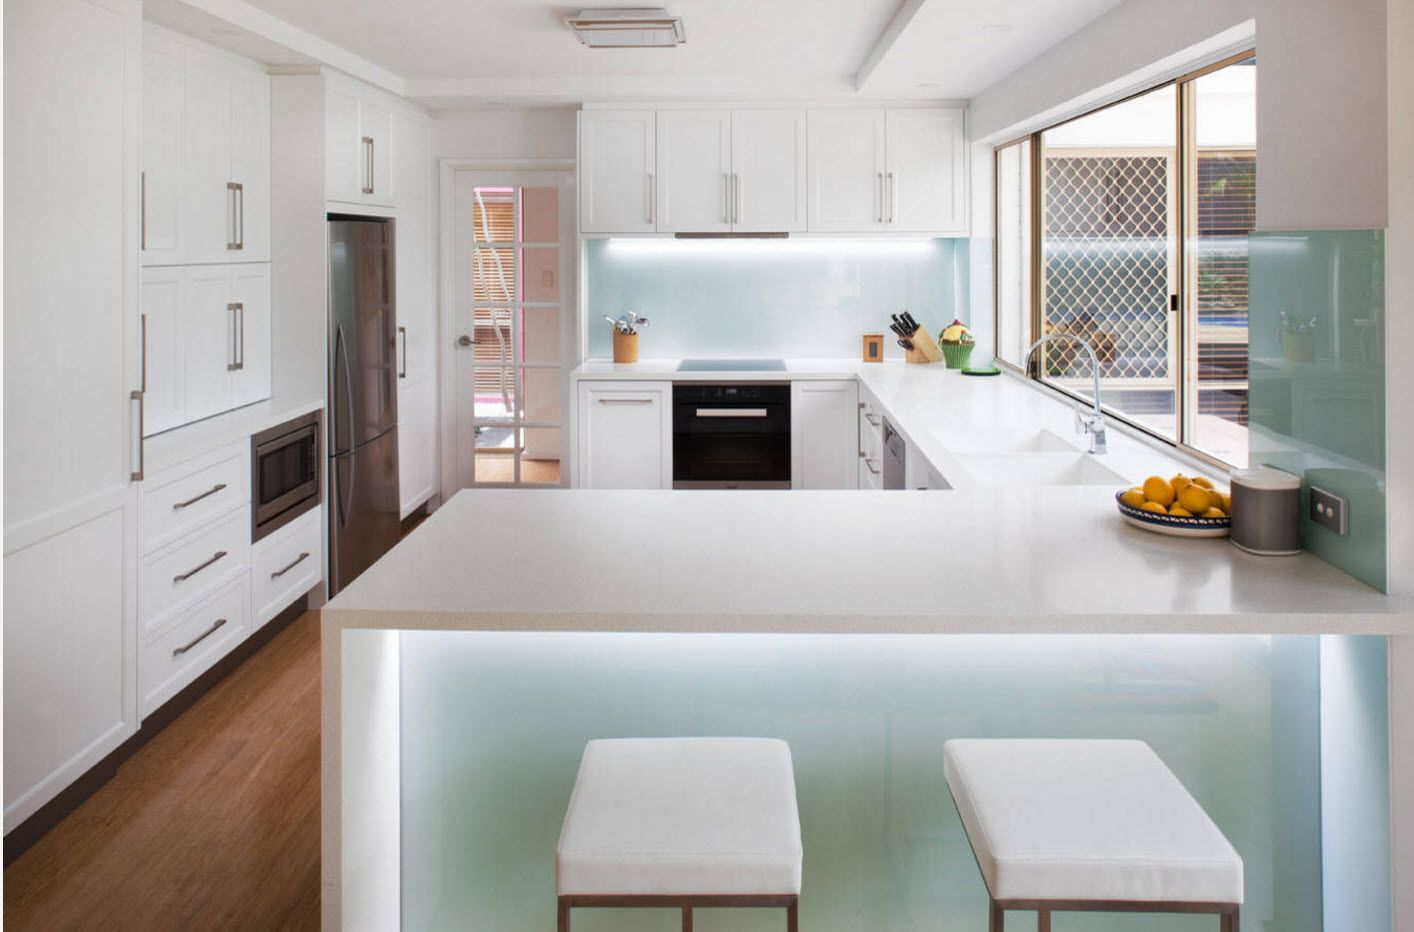 Kitchen's spectacular design with led backlight of the ultramodern island with plastic surface